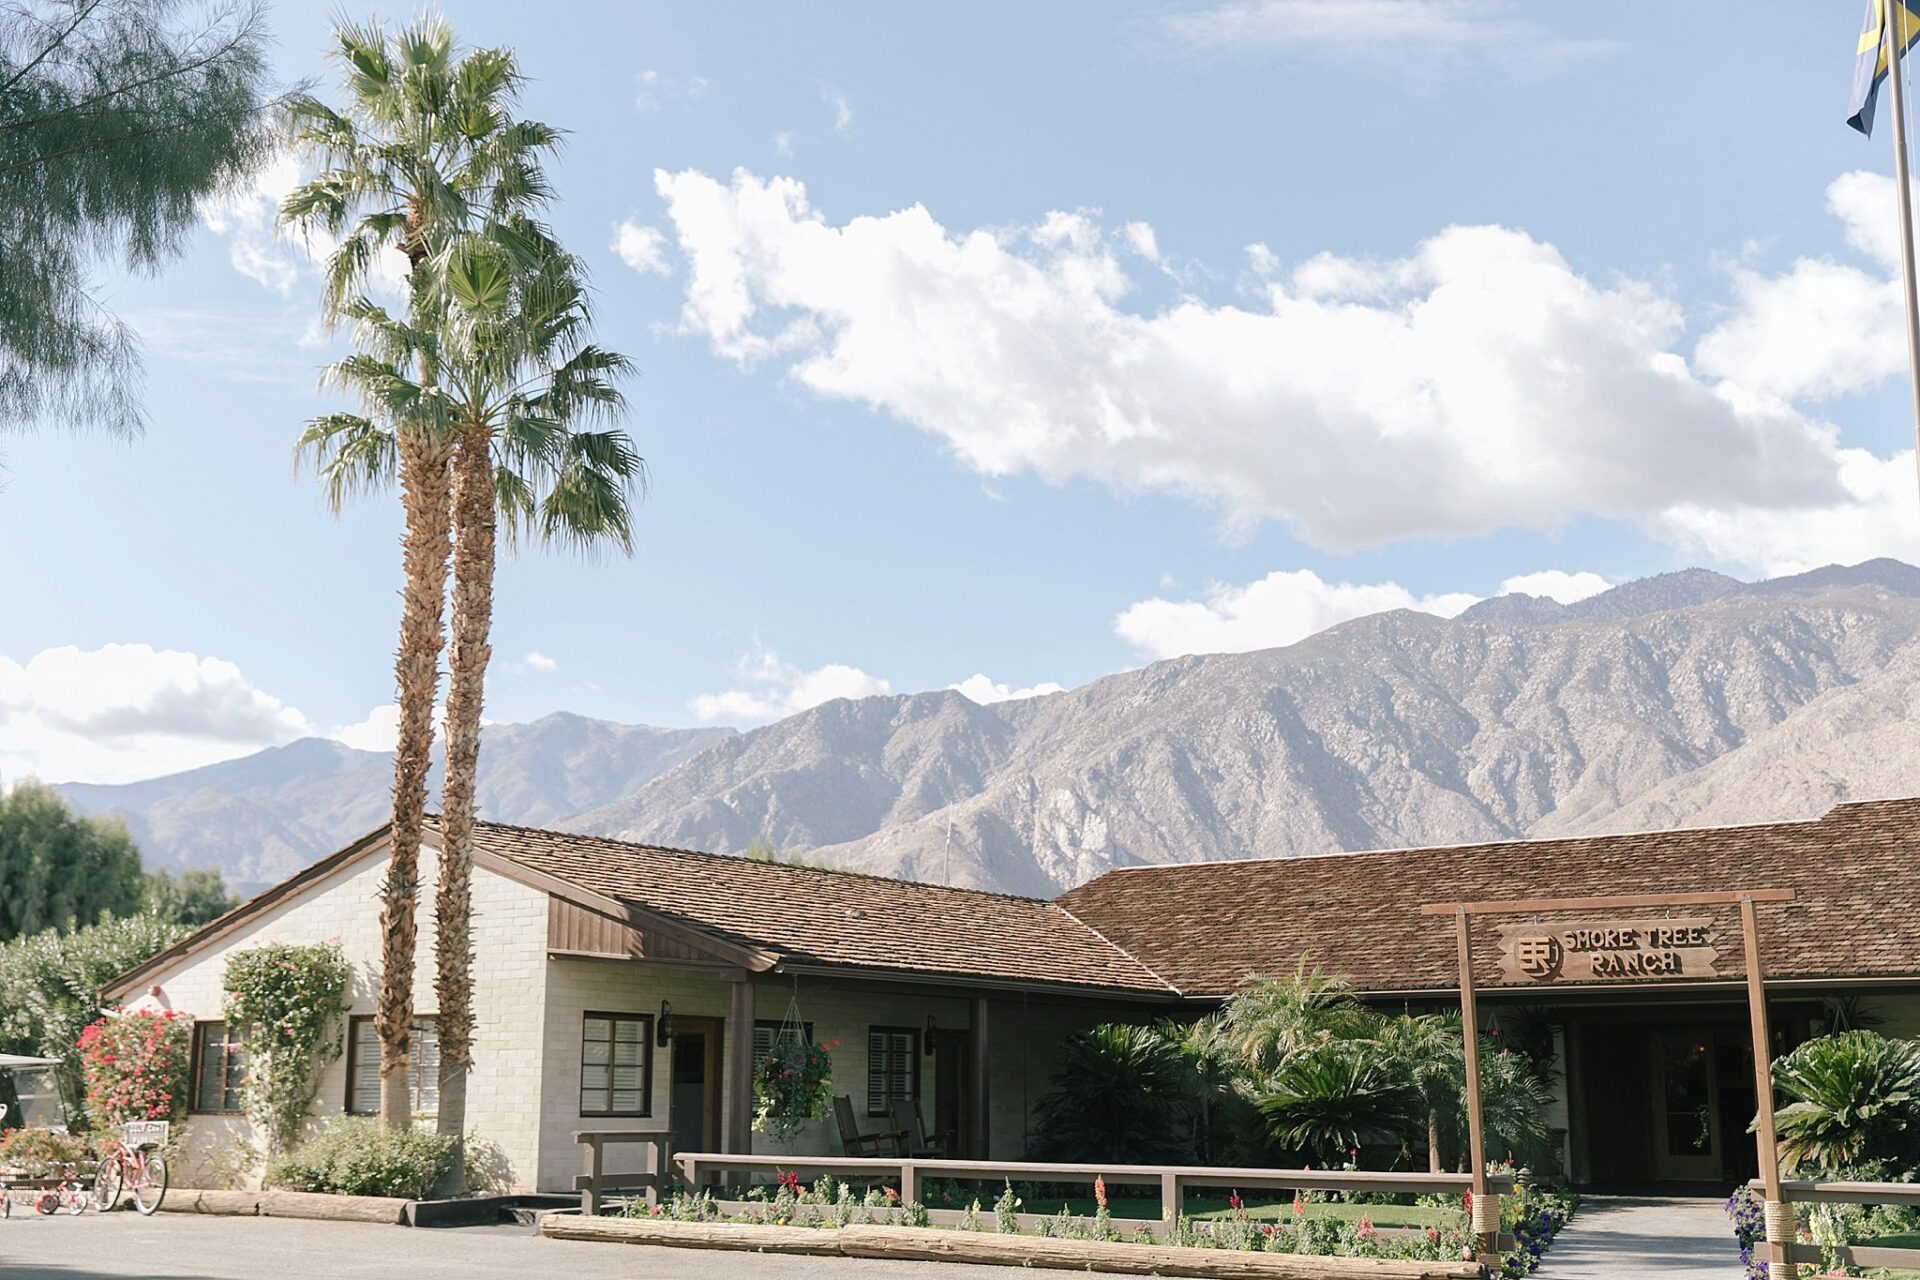 smoke tree ranch in palm spings